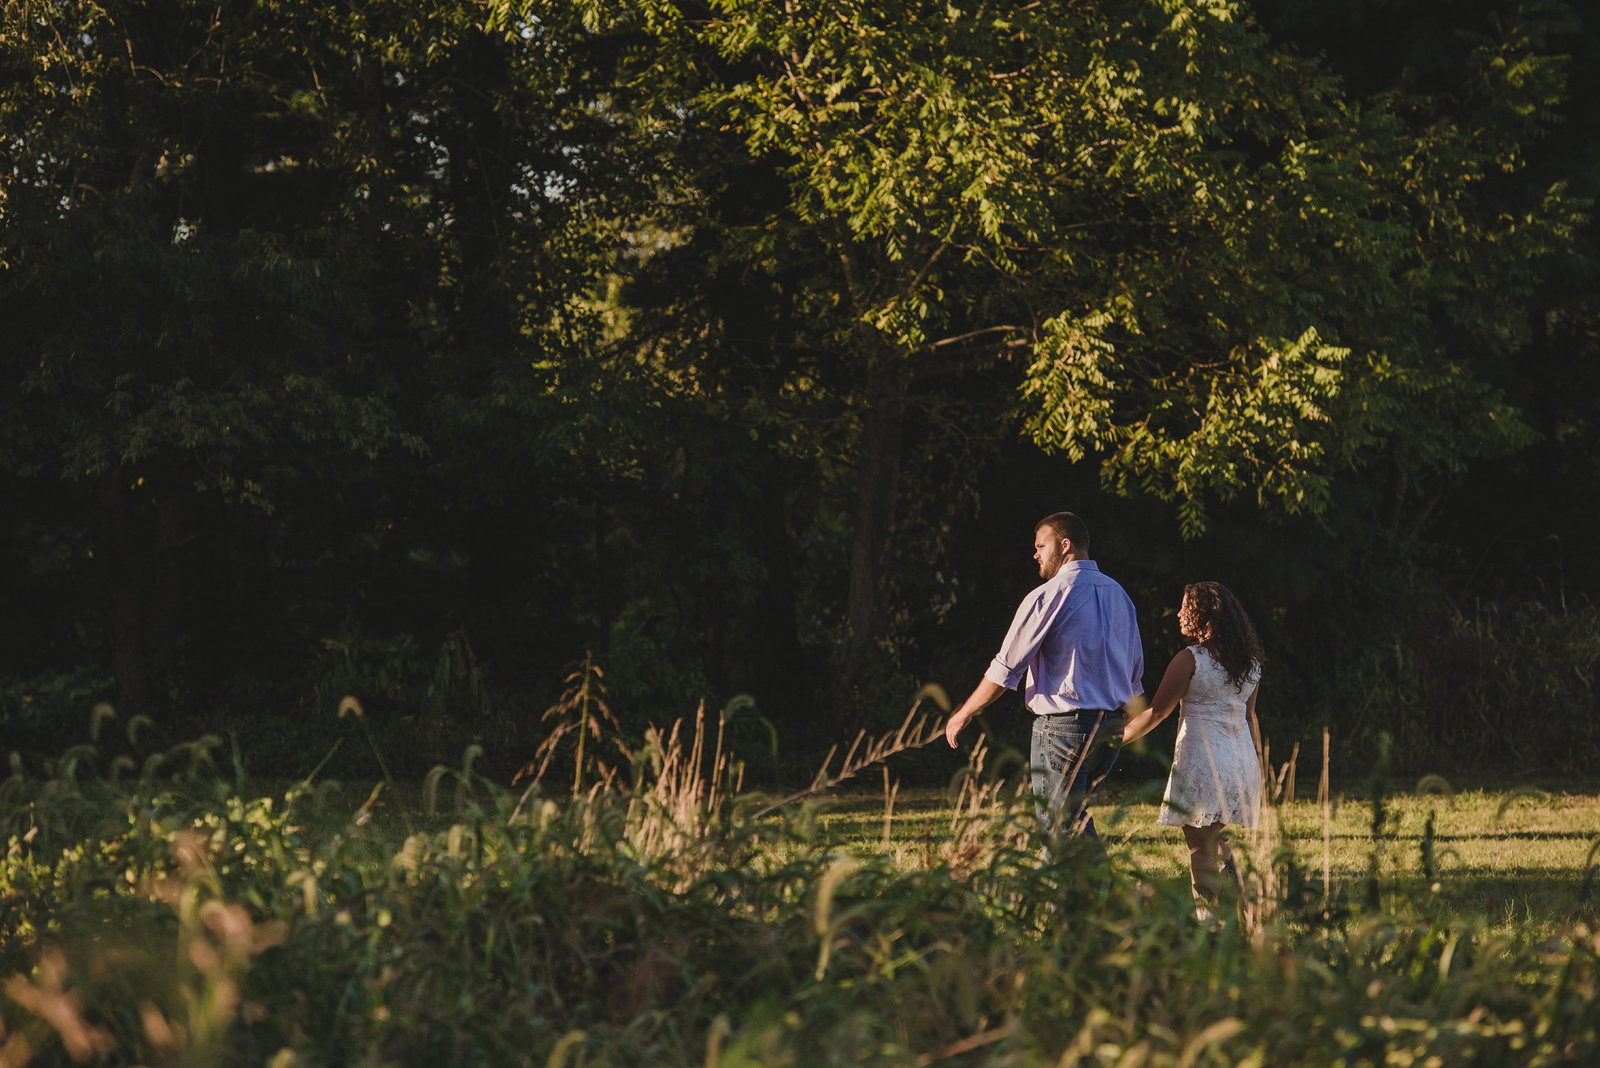 NJ_Rustic_Engagement_Photography097